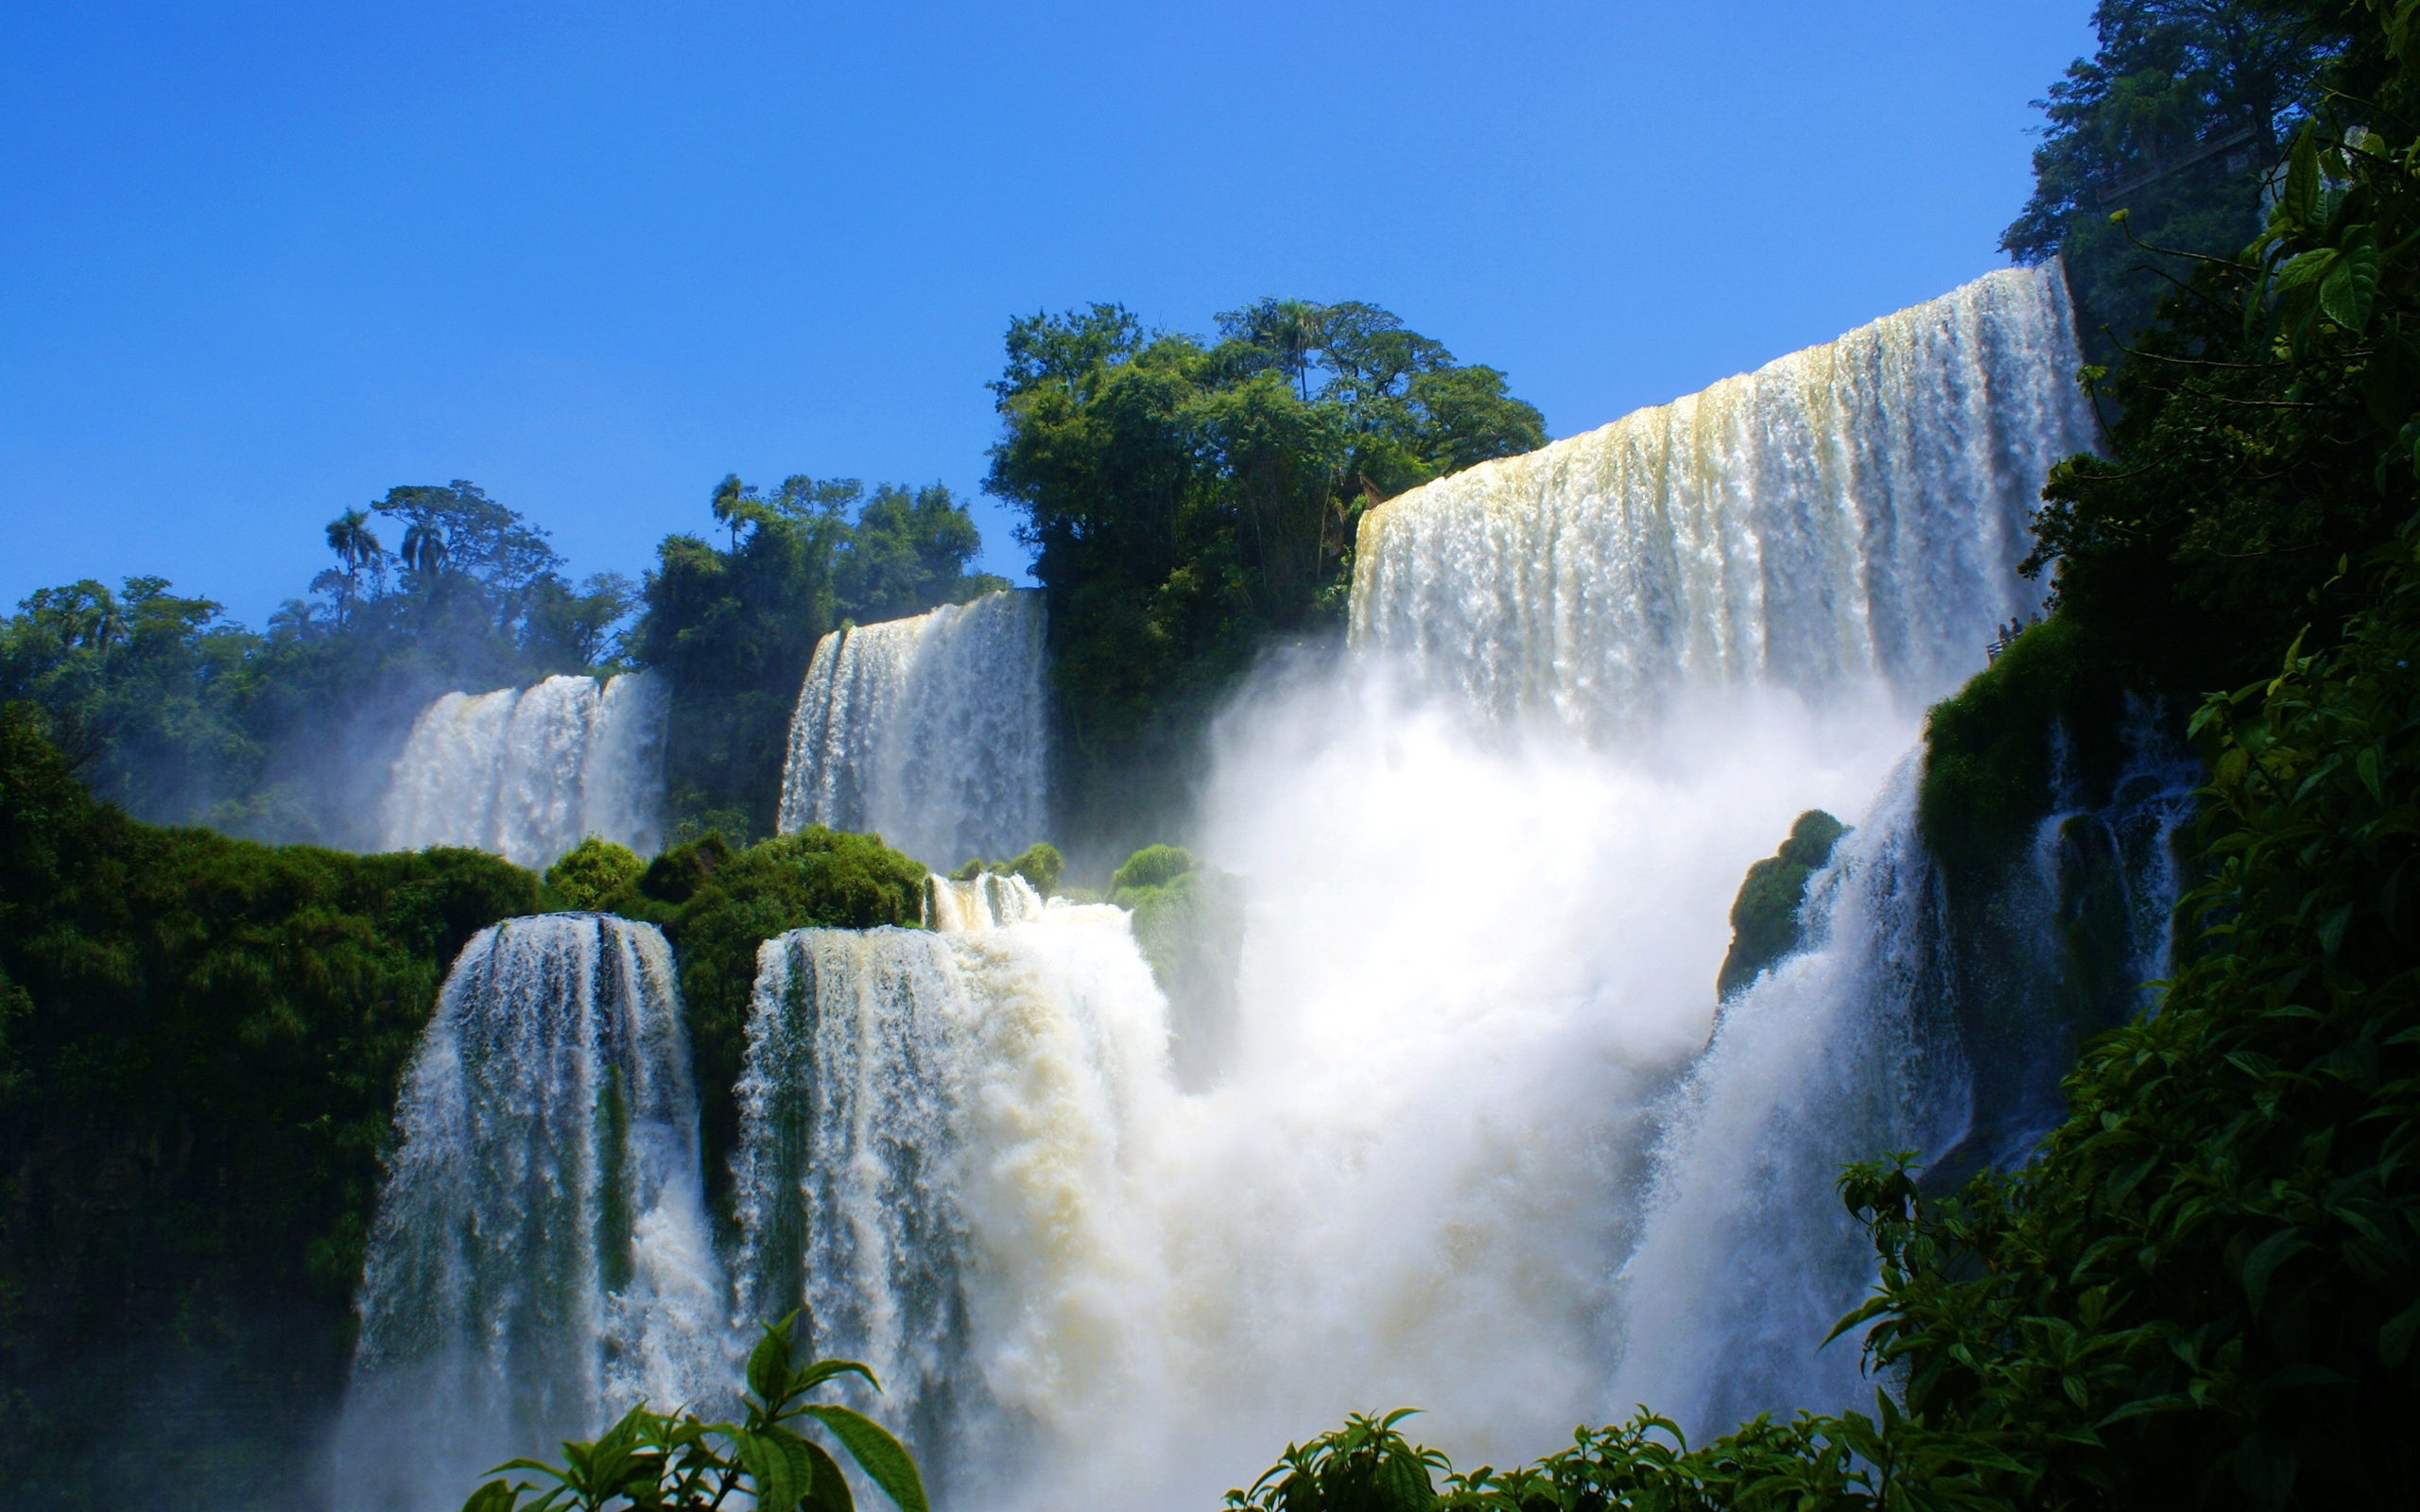 Wallpaper Spectacular Scenery Of Waterfalls And Rapids